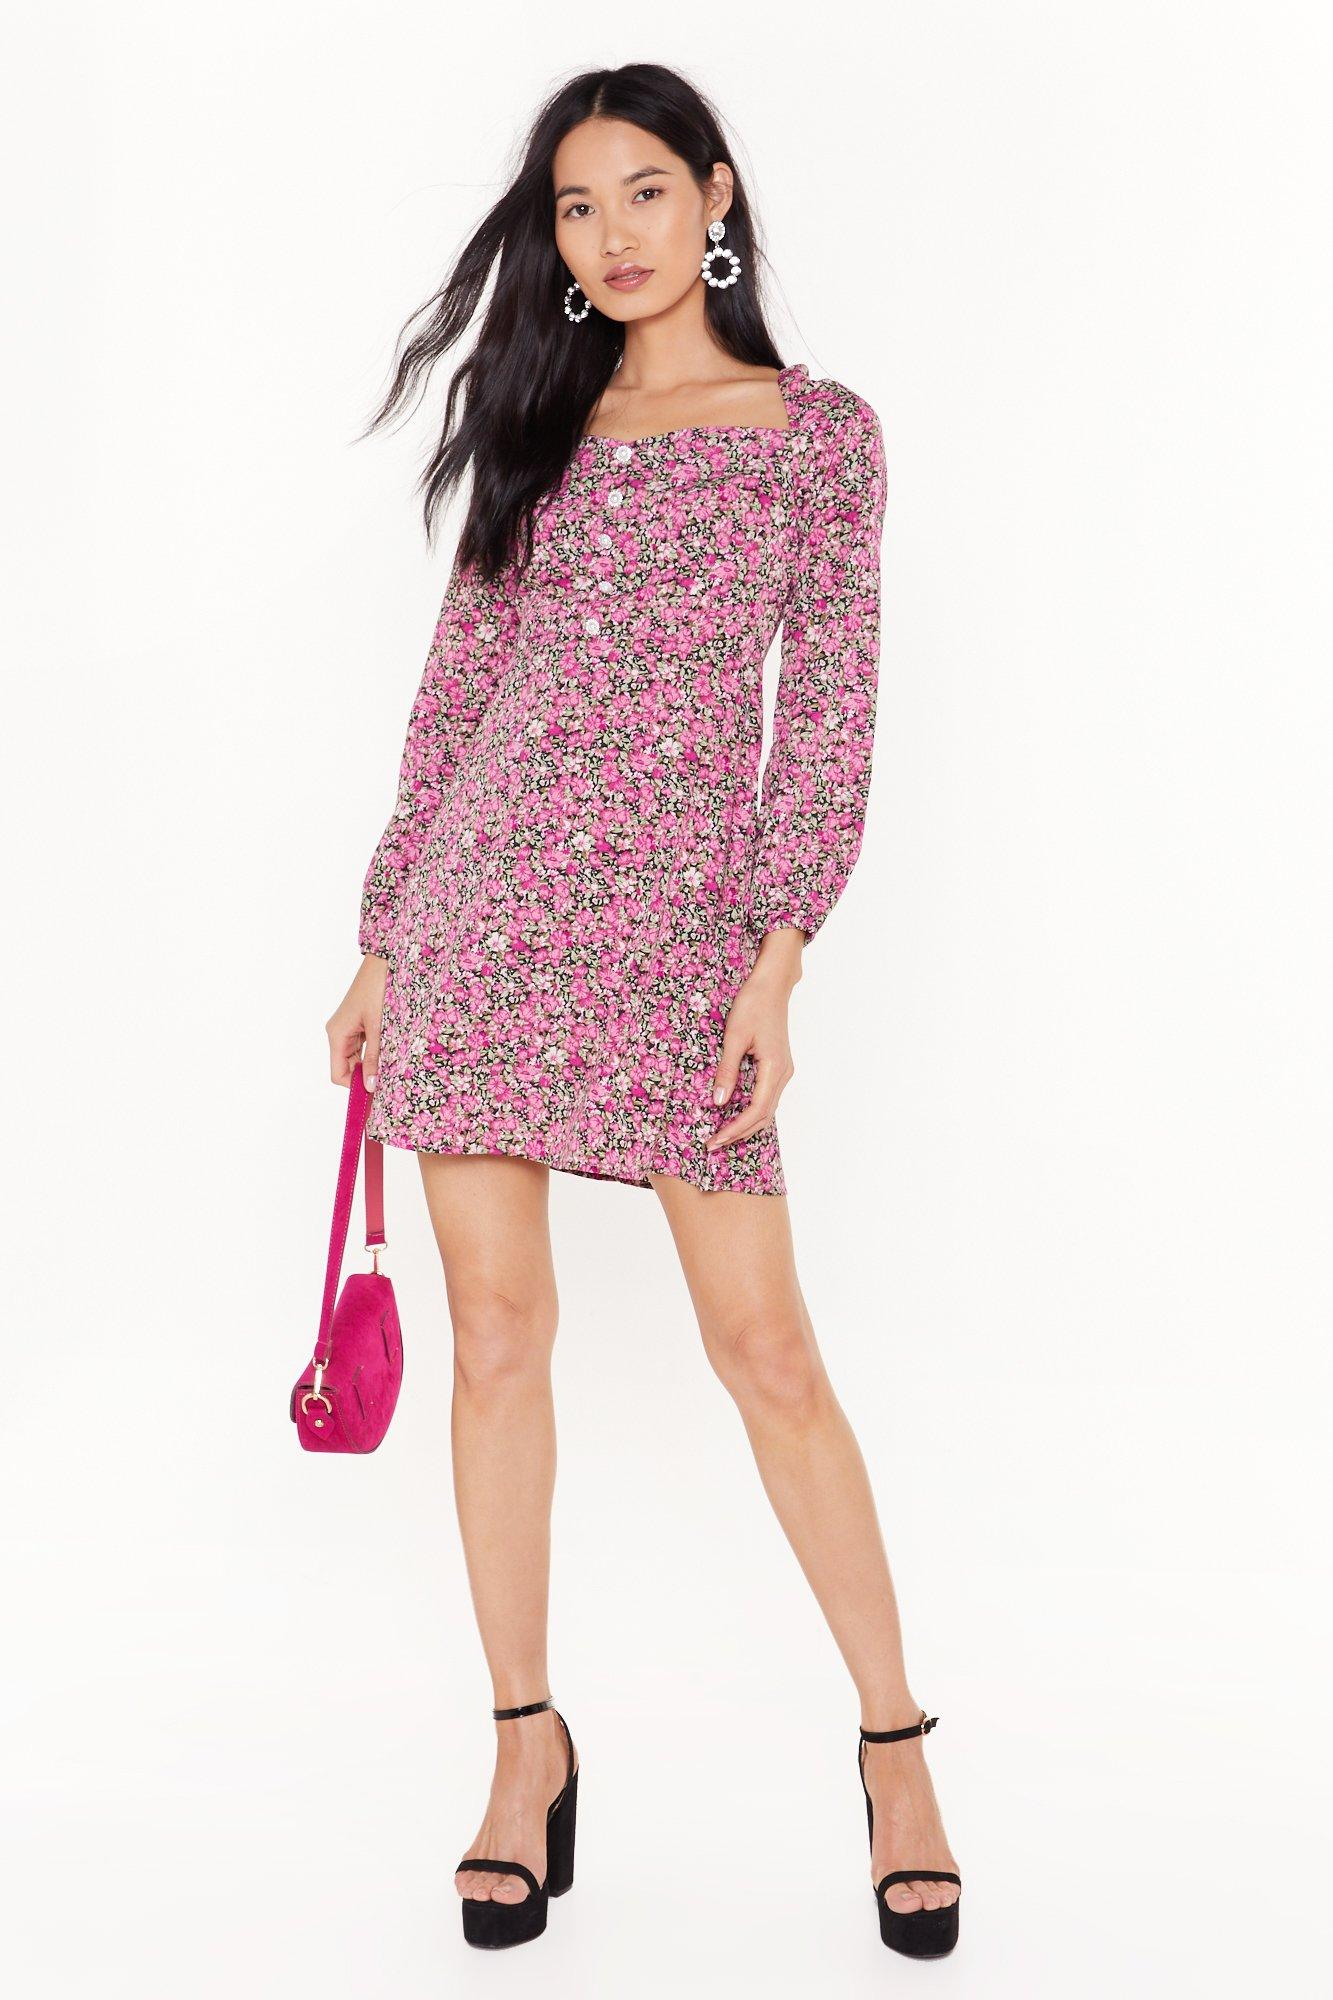 Image of Plant Pin Me Down Floral Mini Dress